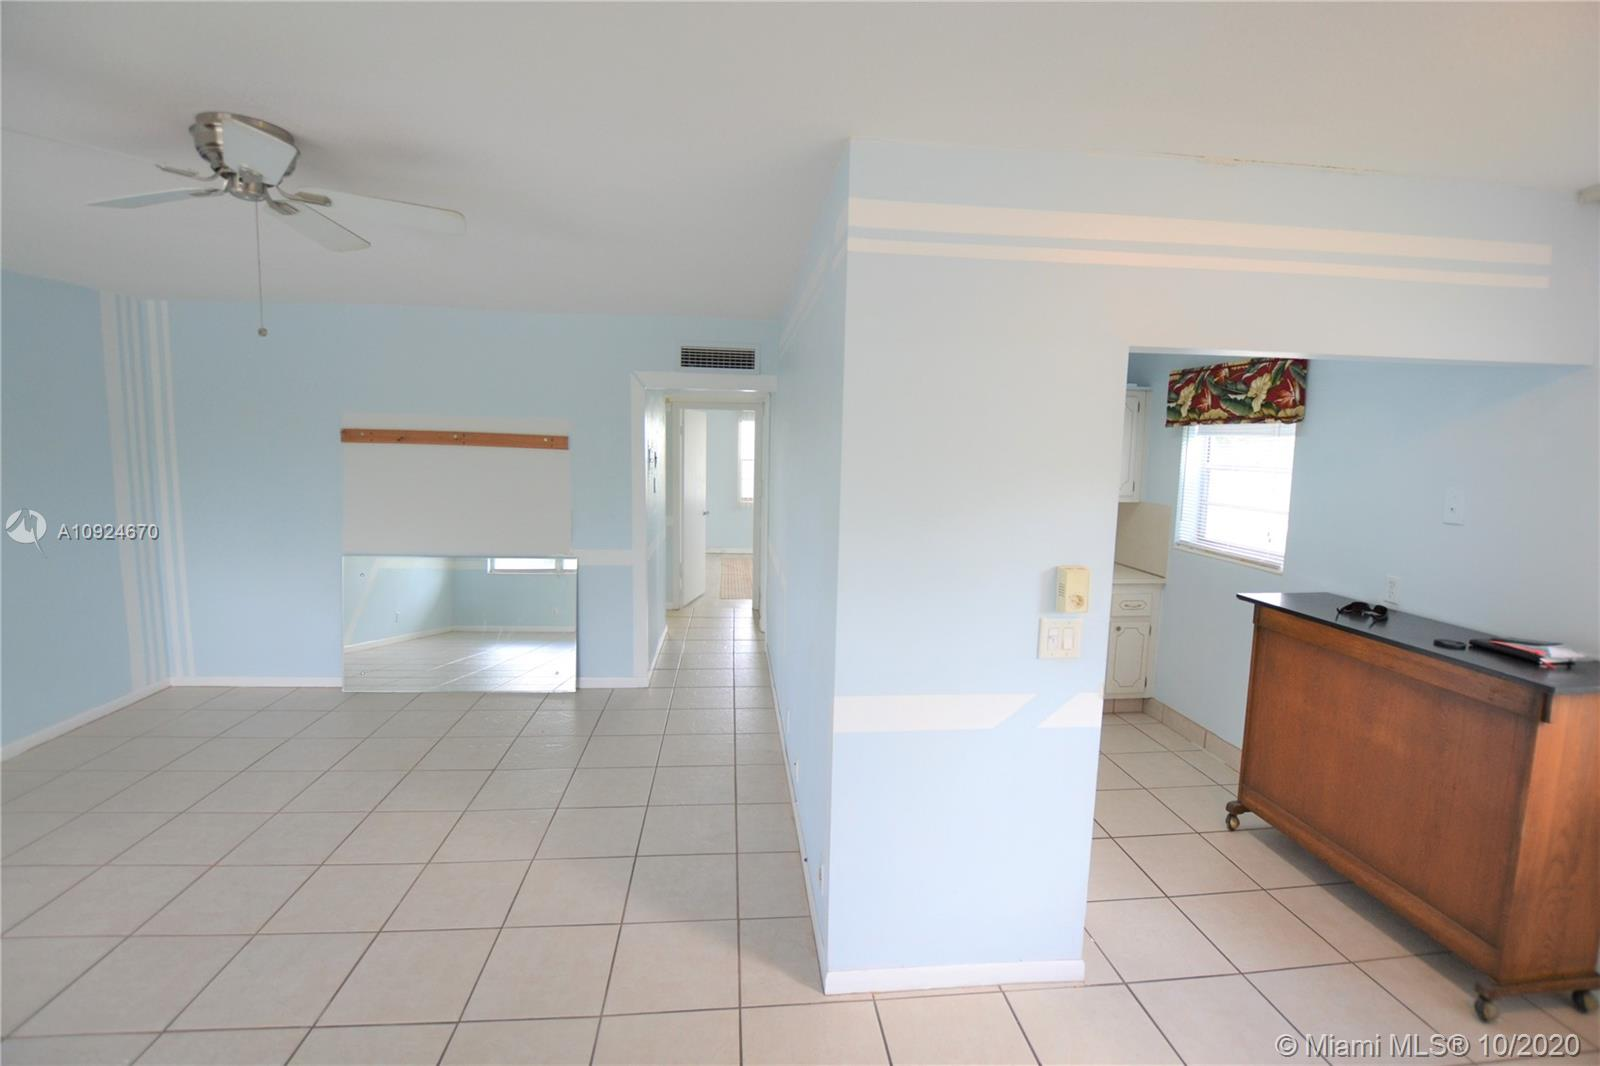 133 Coventry F 133, West Palm Beach, FL 33417